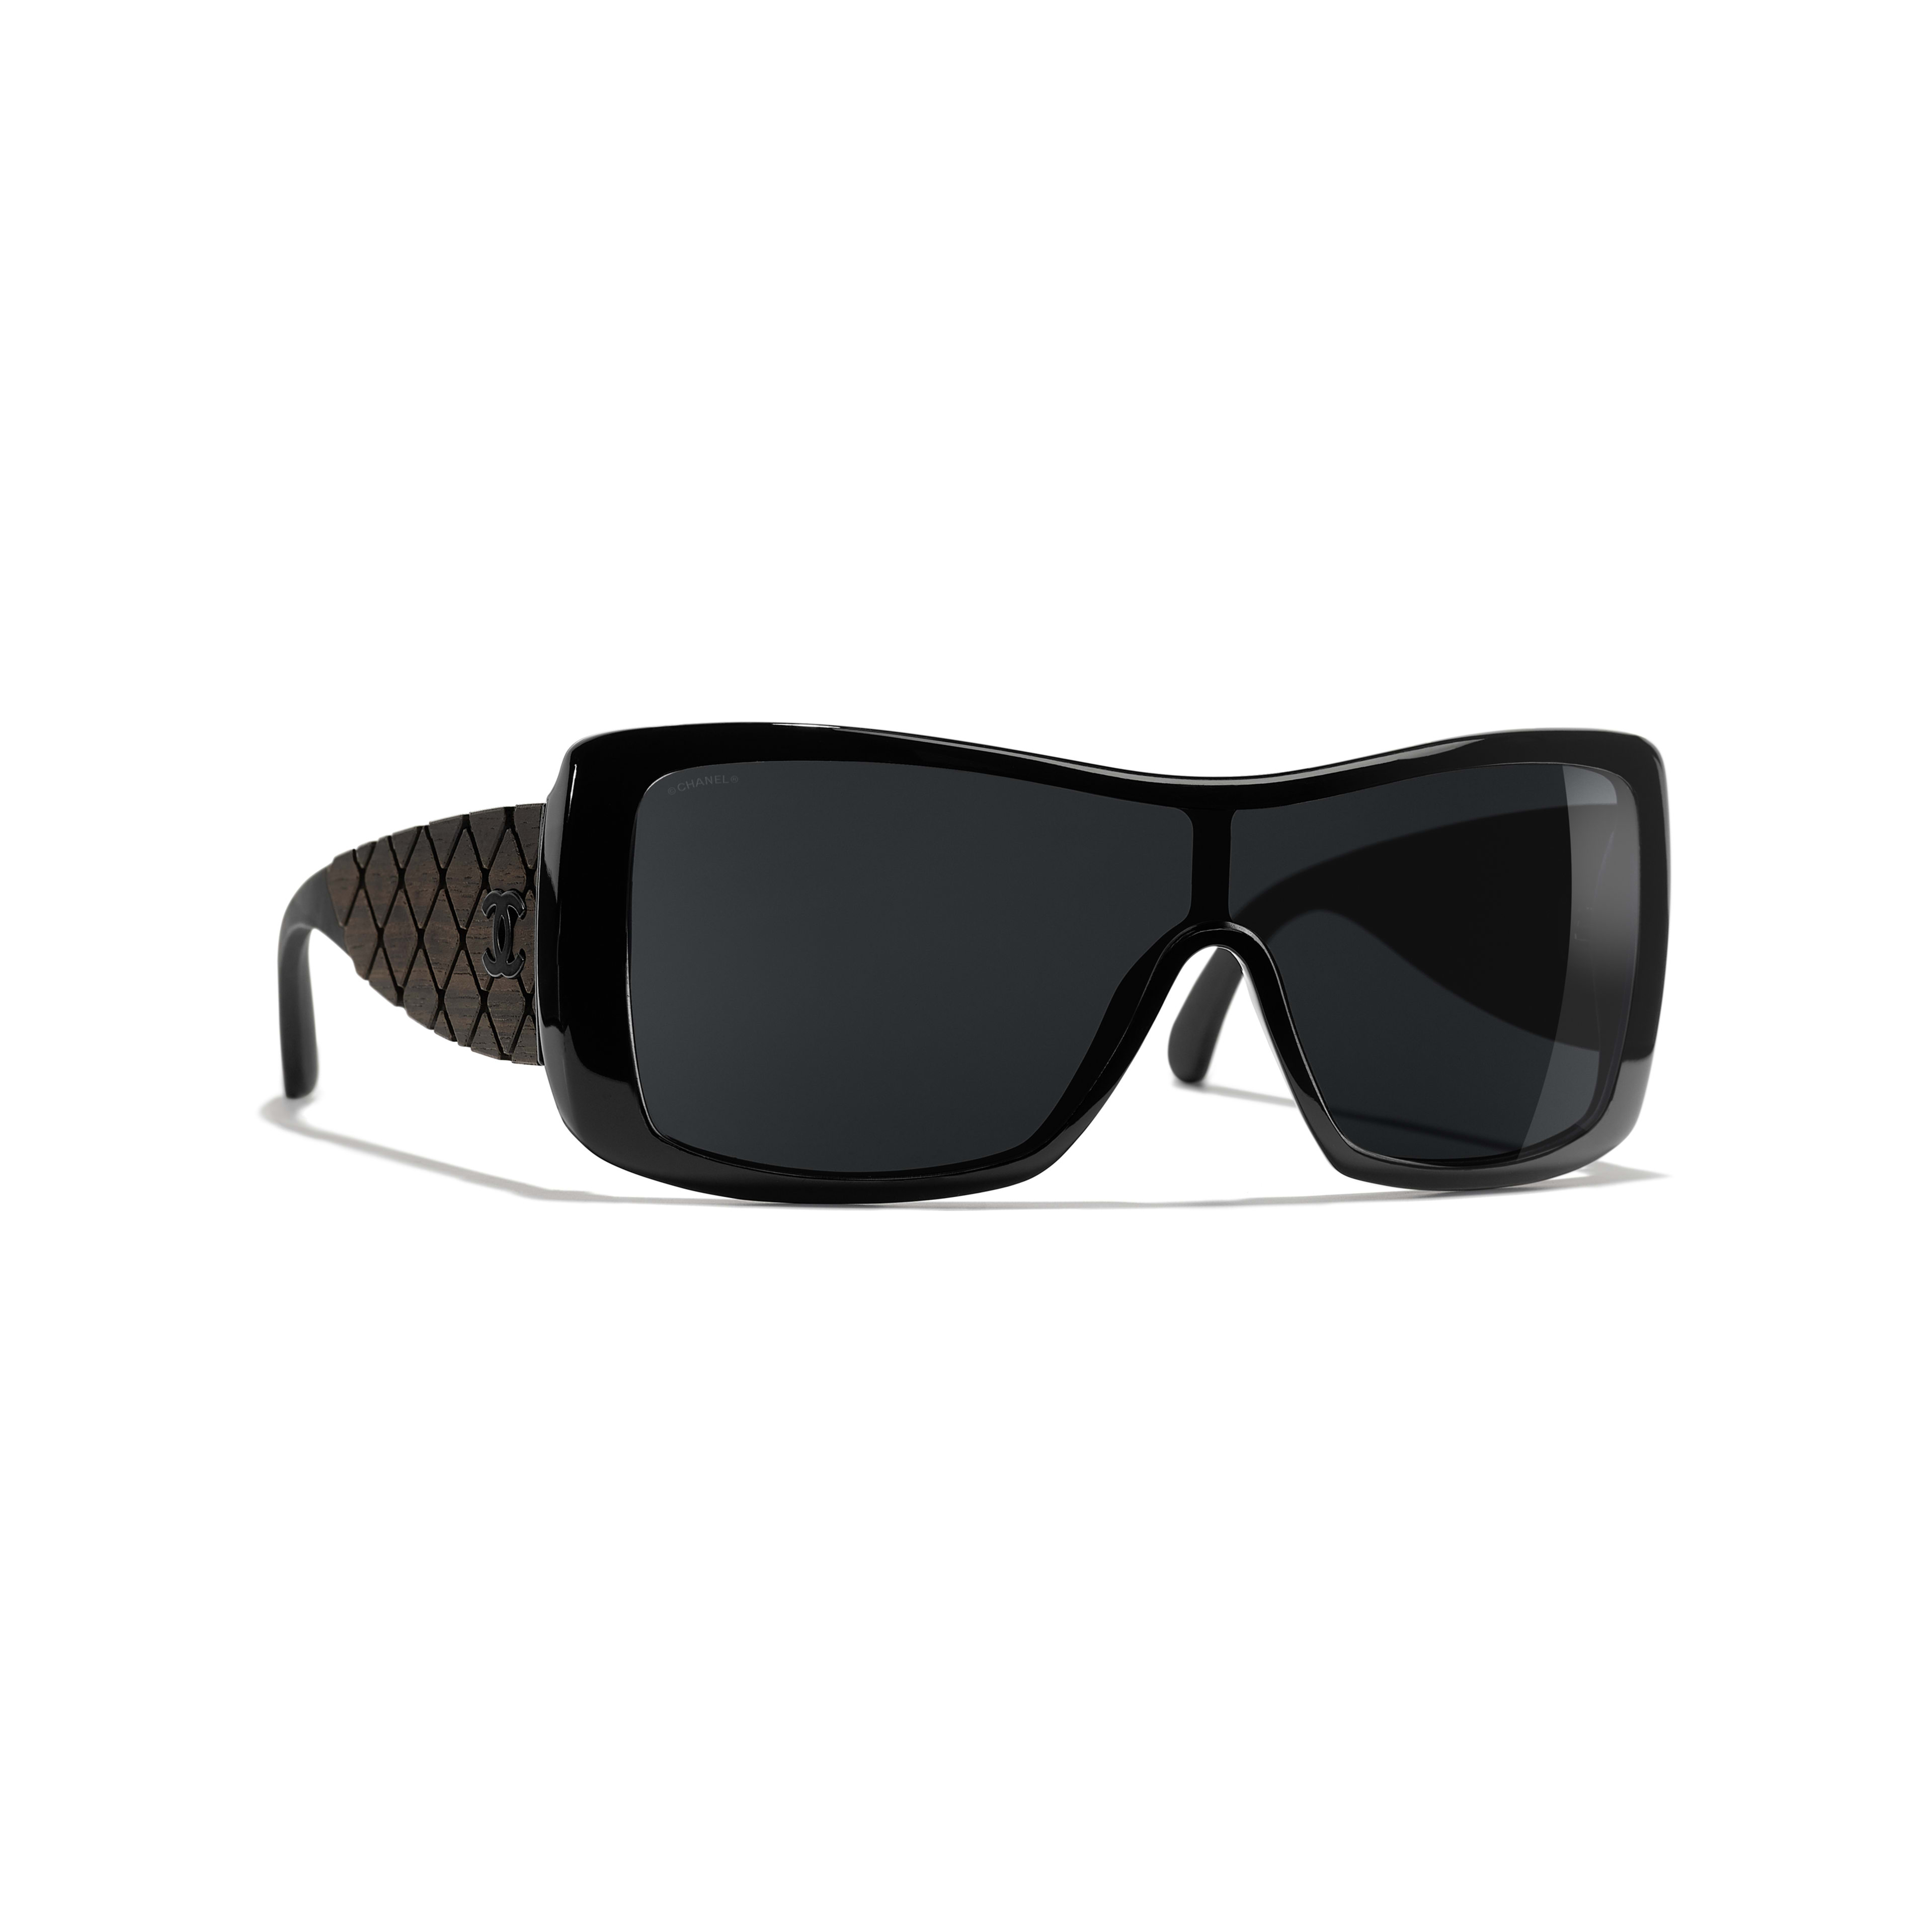 Shield Sunglasses - Black - Acetate, Wood & Rubber - Default view - see full sized version